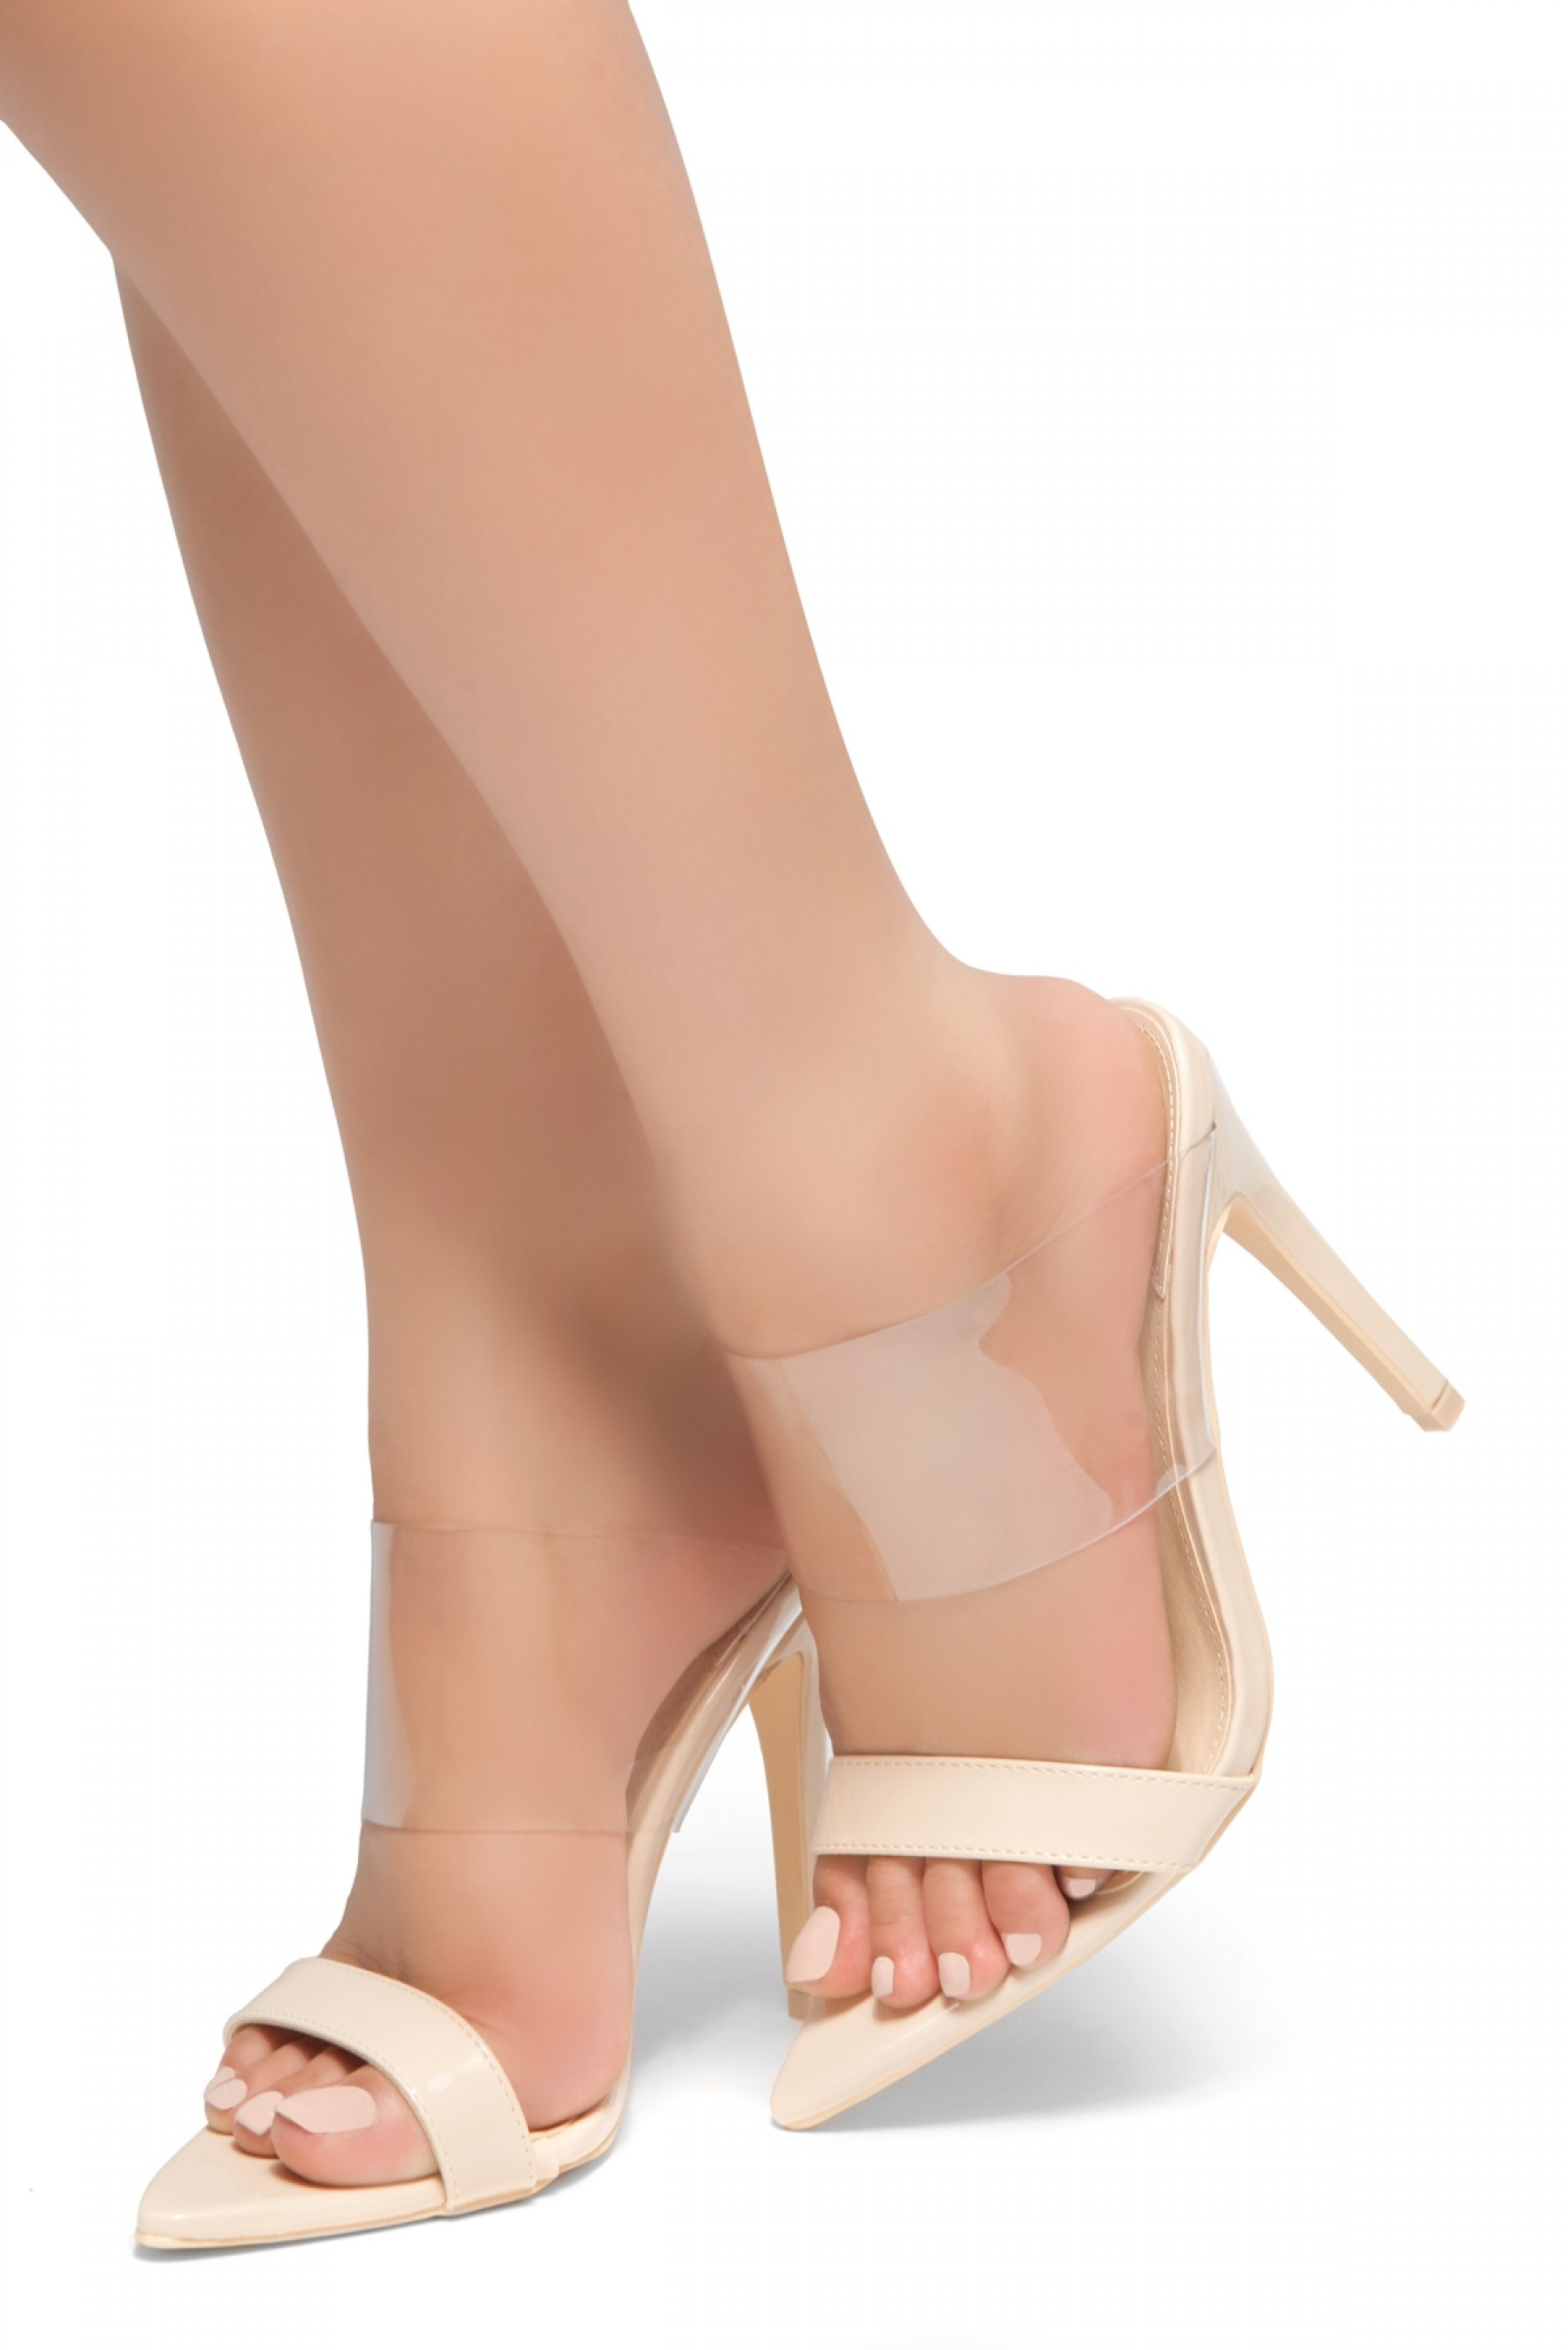 HerStyle Ilka - Pointed Toe Open Back Stiletto Heel, Perspex Vamp slipper (Nude)